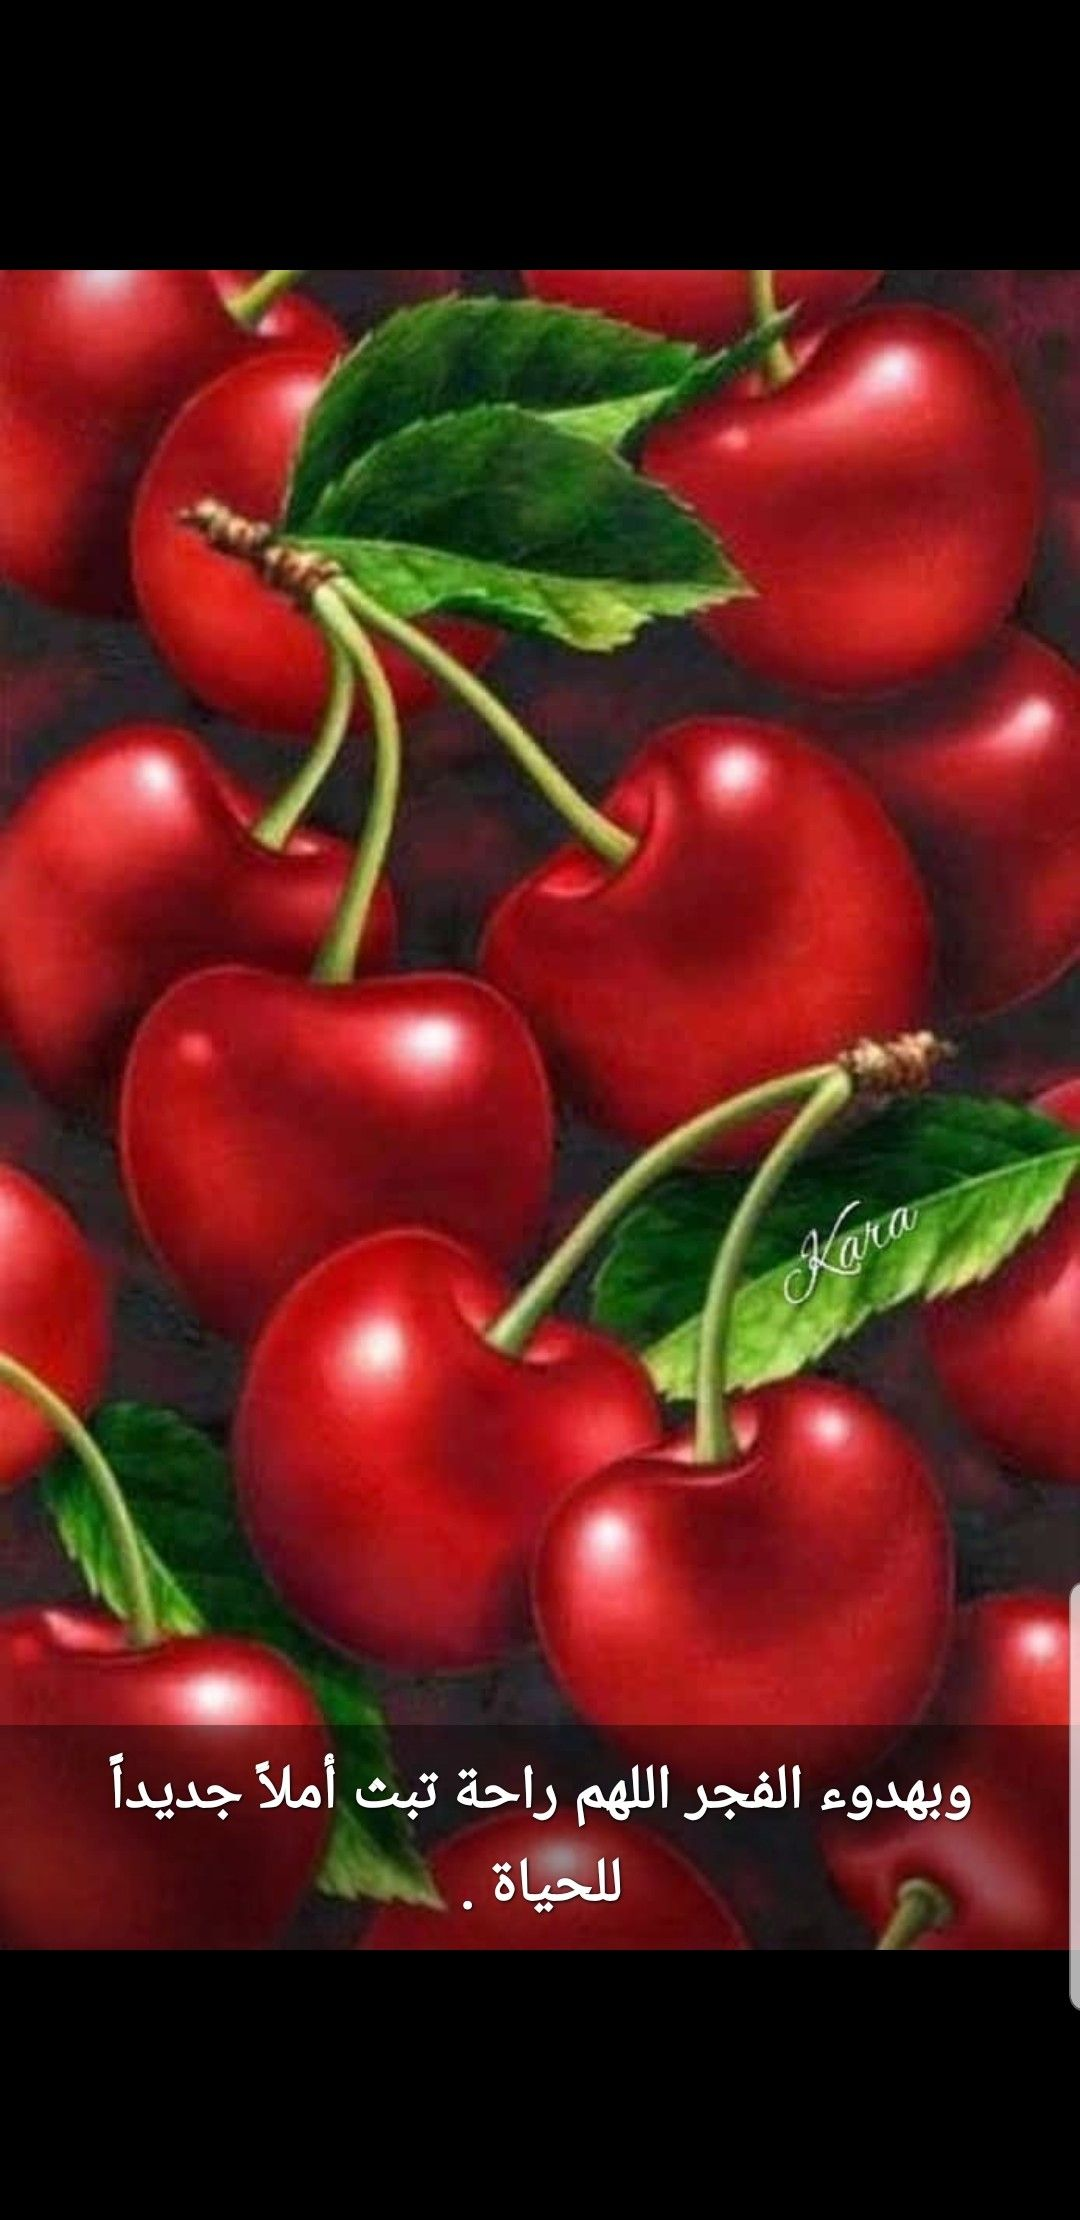 Pin By Amani On Good Morning In 2020 Cherry Red Cherry Simply Red